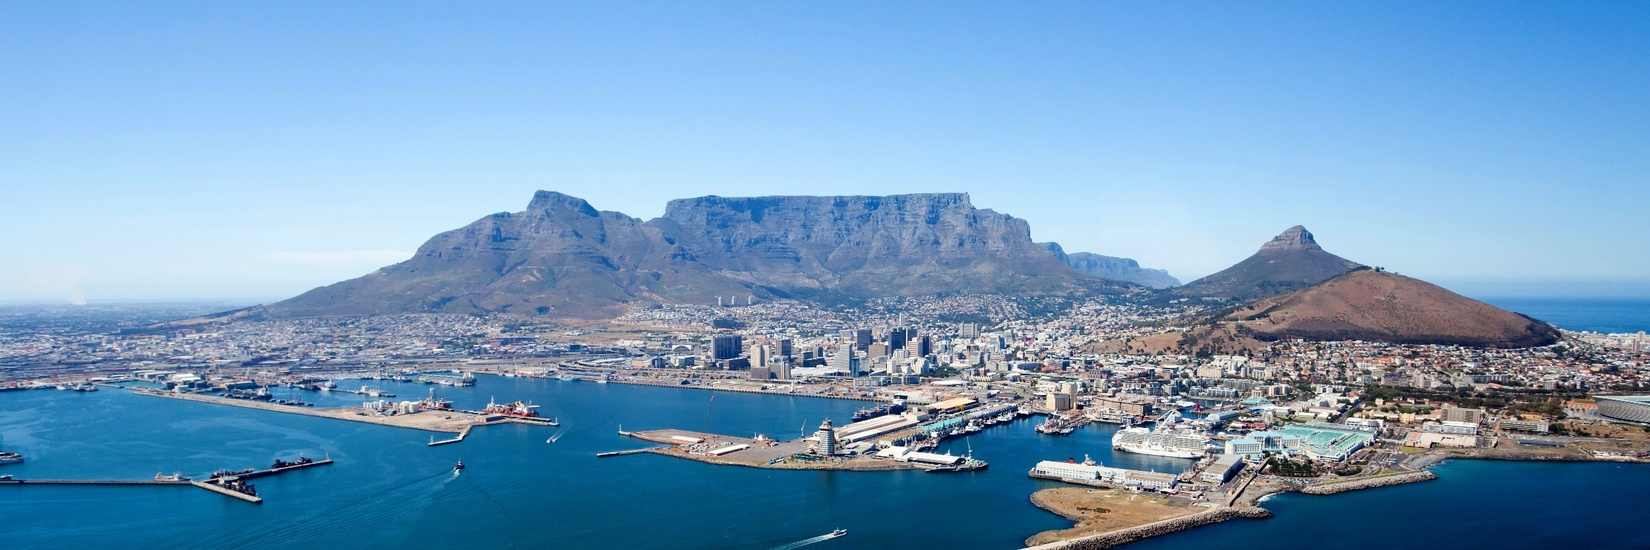 Cape Town Table Mountain 5 HD Wallpaper Landmarks Wallpapers 1650x550